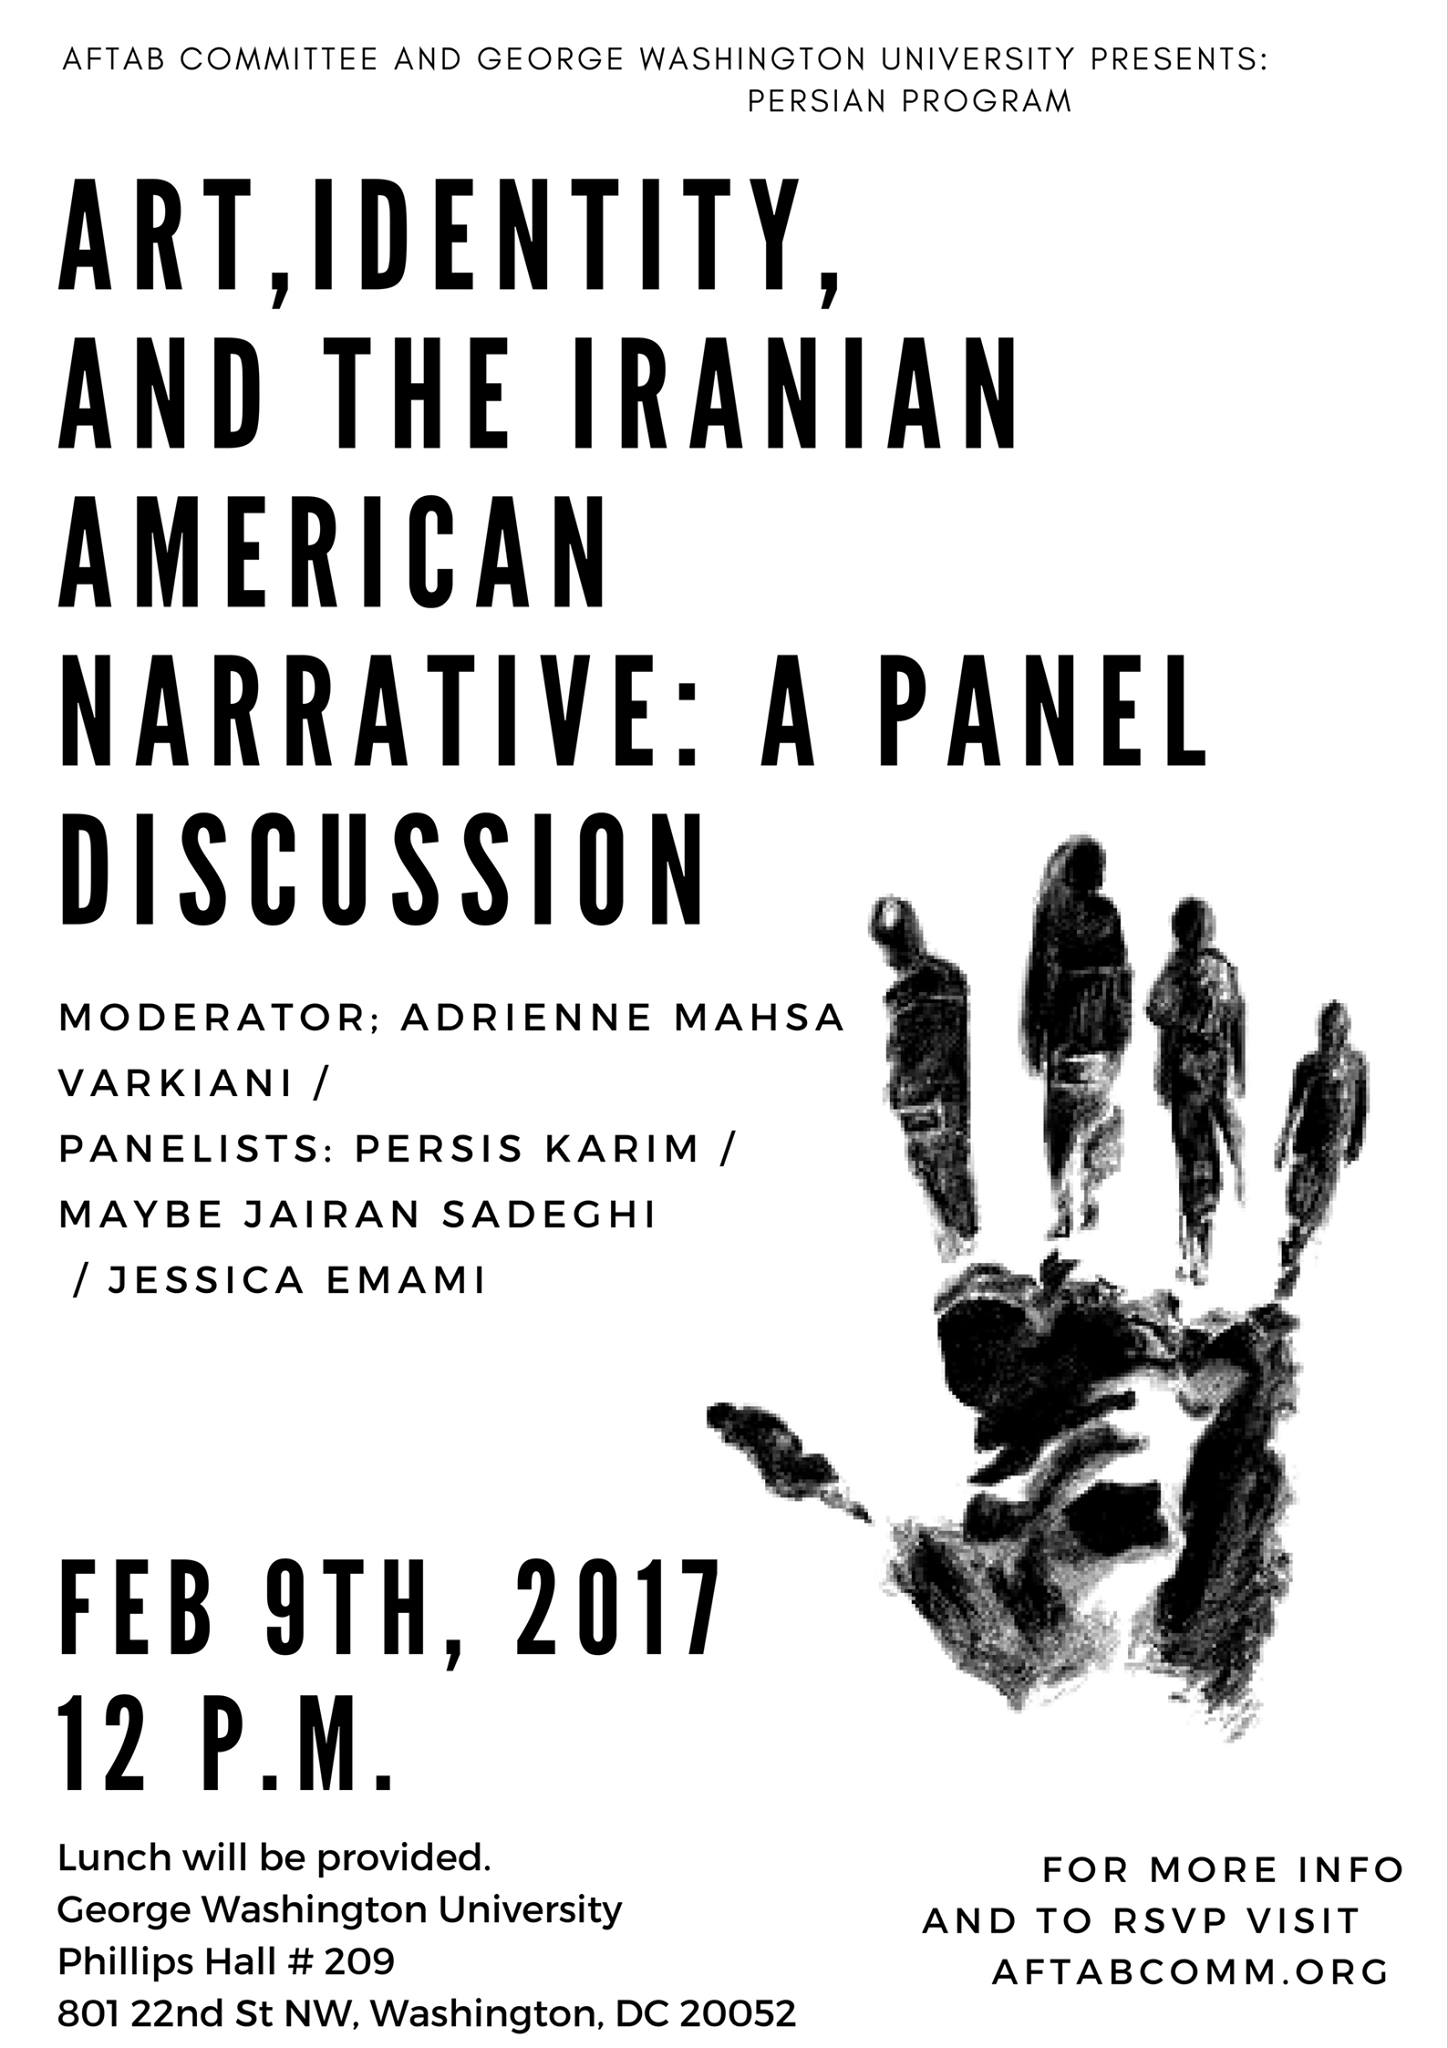 Art, Identity, and the Iranian-American Narrative: A Panel Discussion